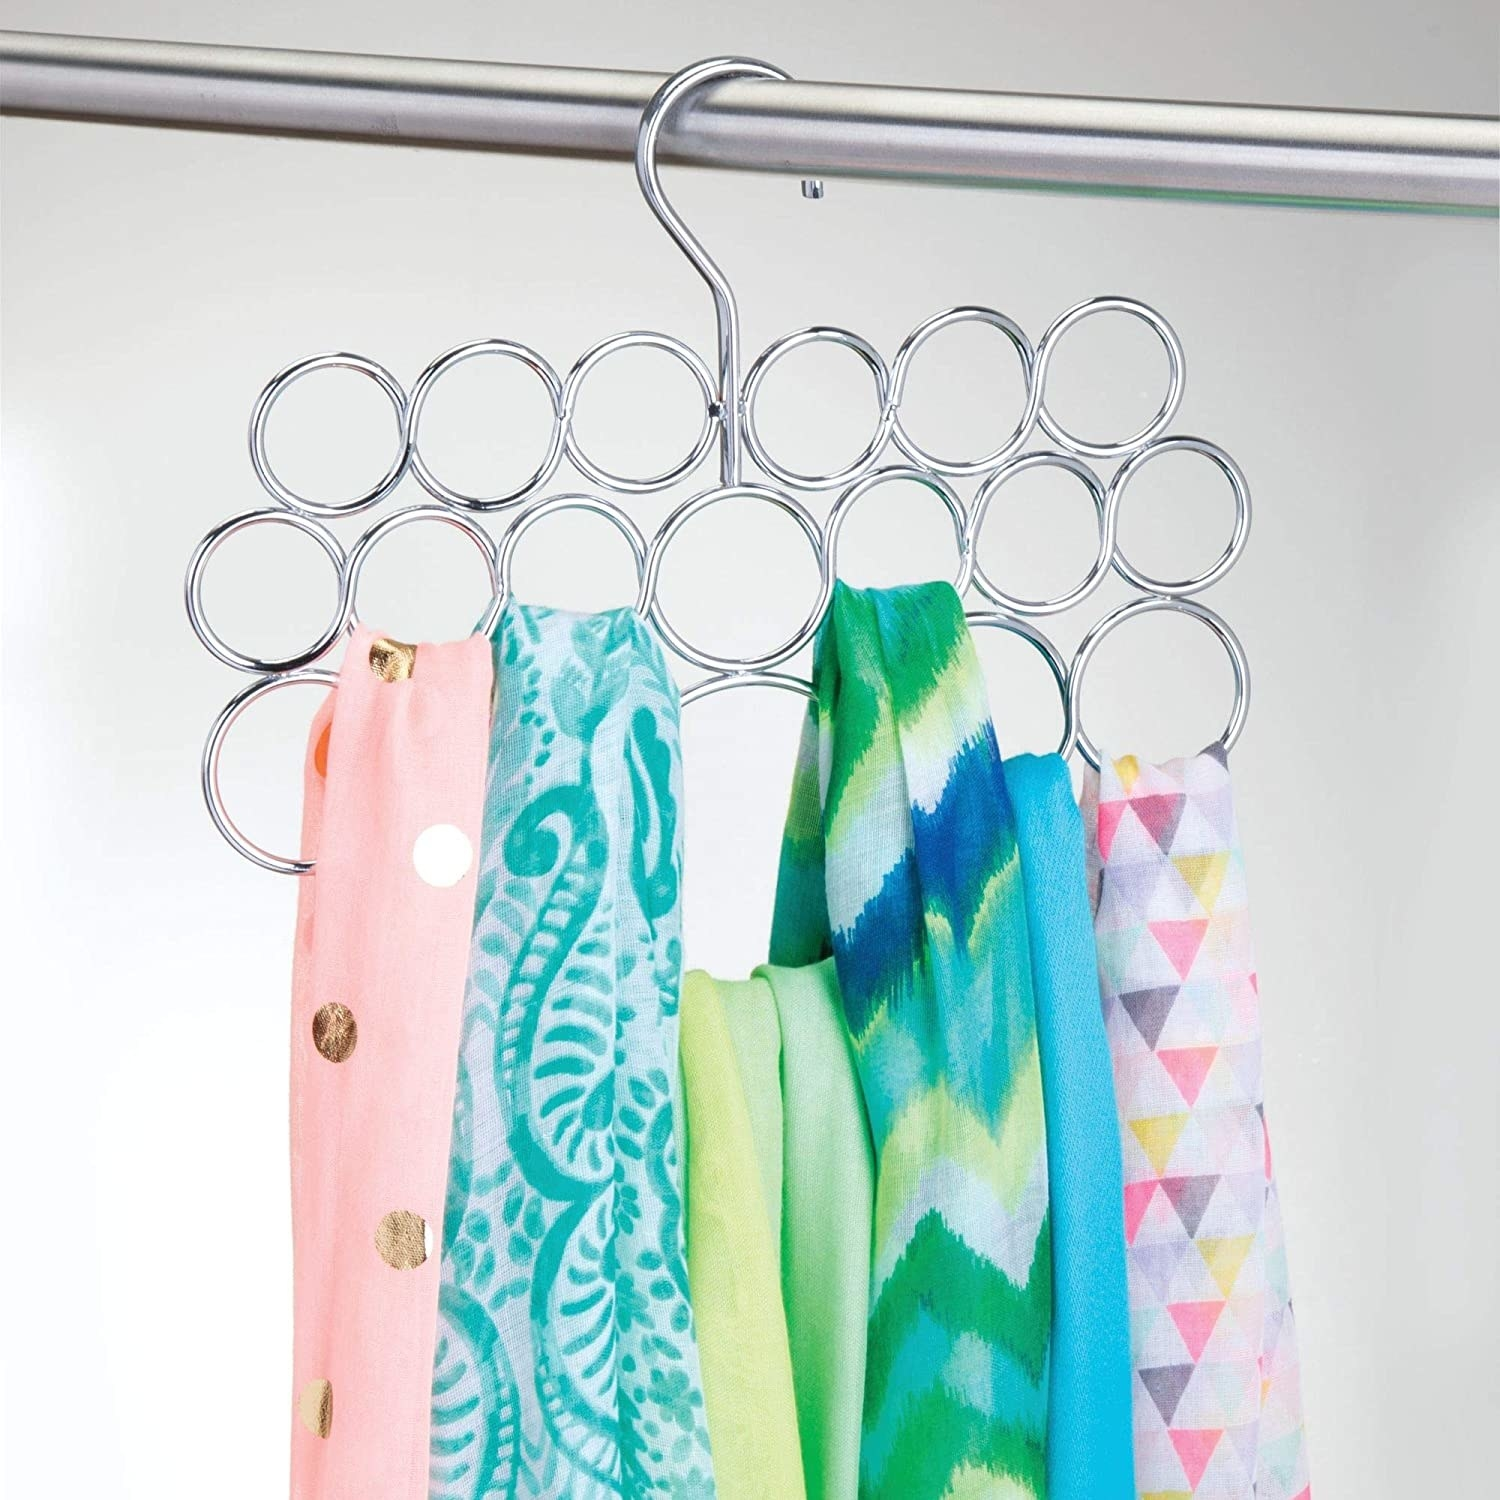 Scarves hanging through a scarf with multiple holes